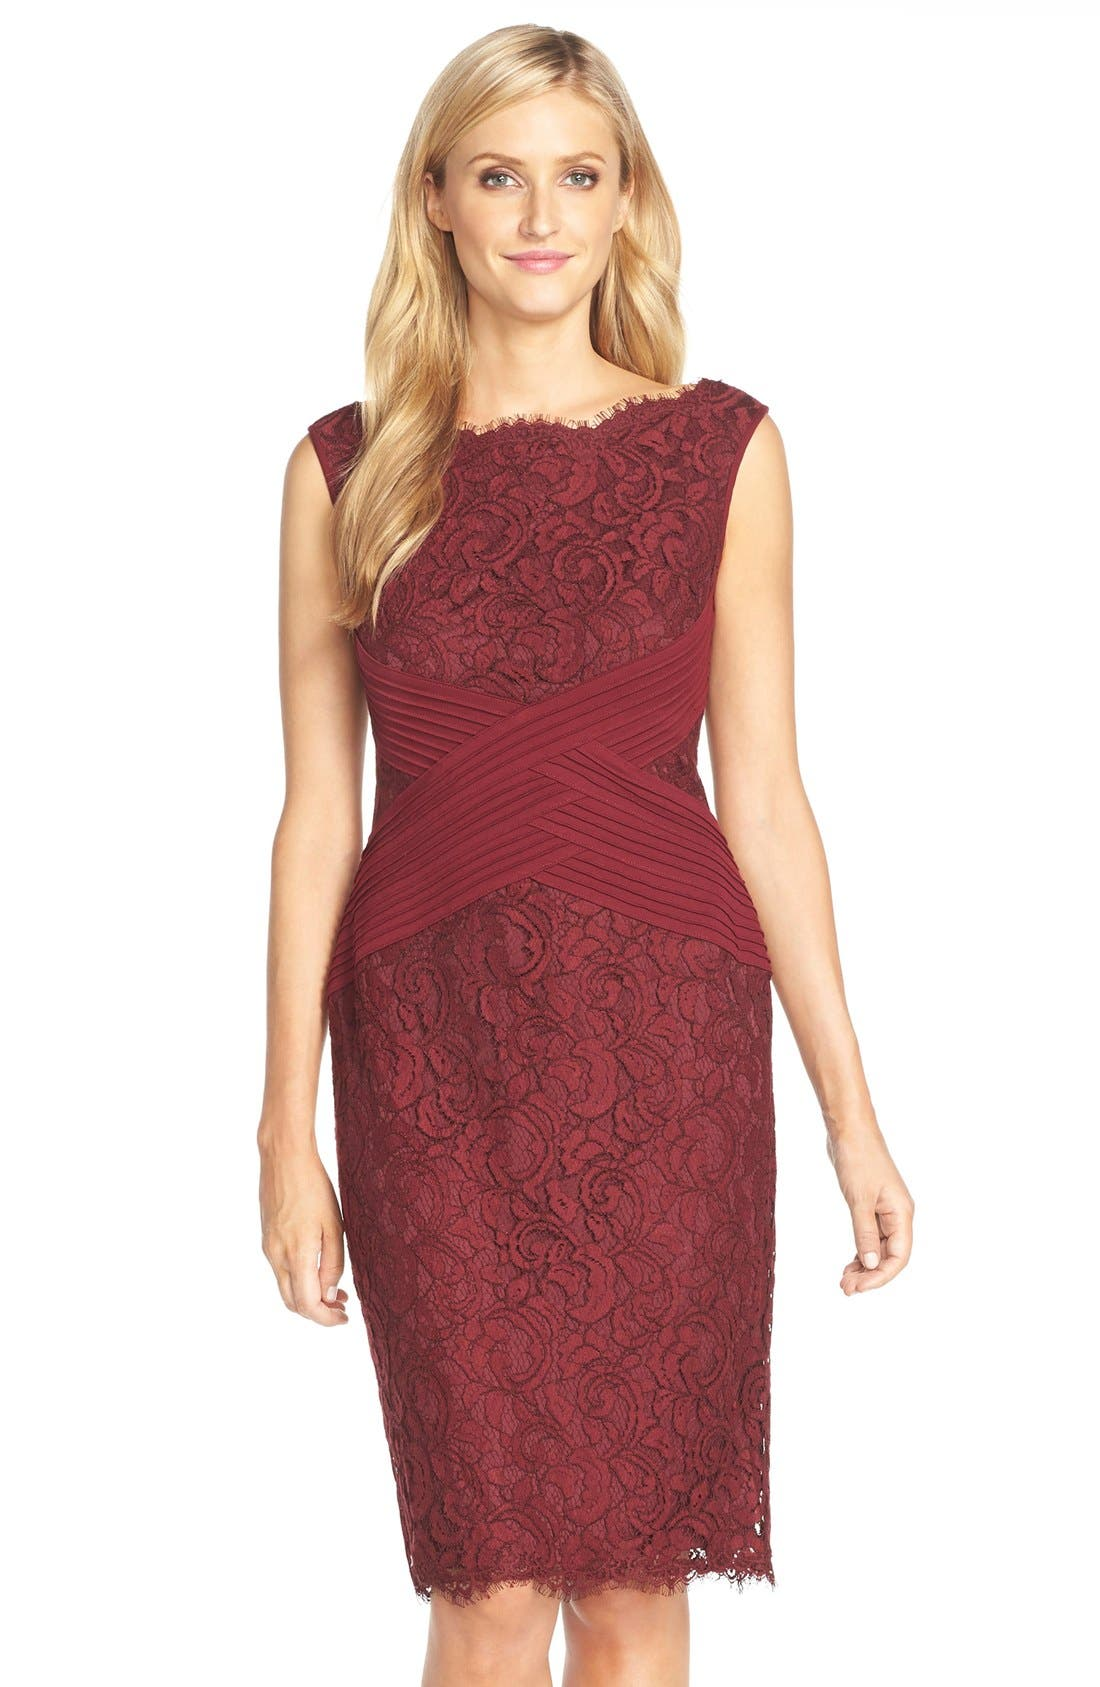 Alternate Image 1 Selected - Tadashi Shoji Crisscross Waist Lace Sheath Dress (Regular & Petite)